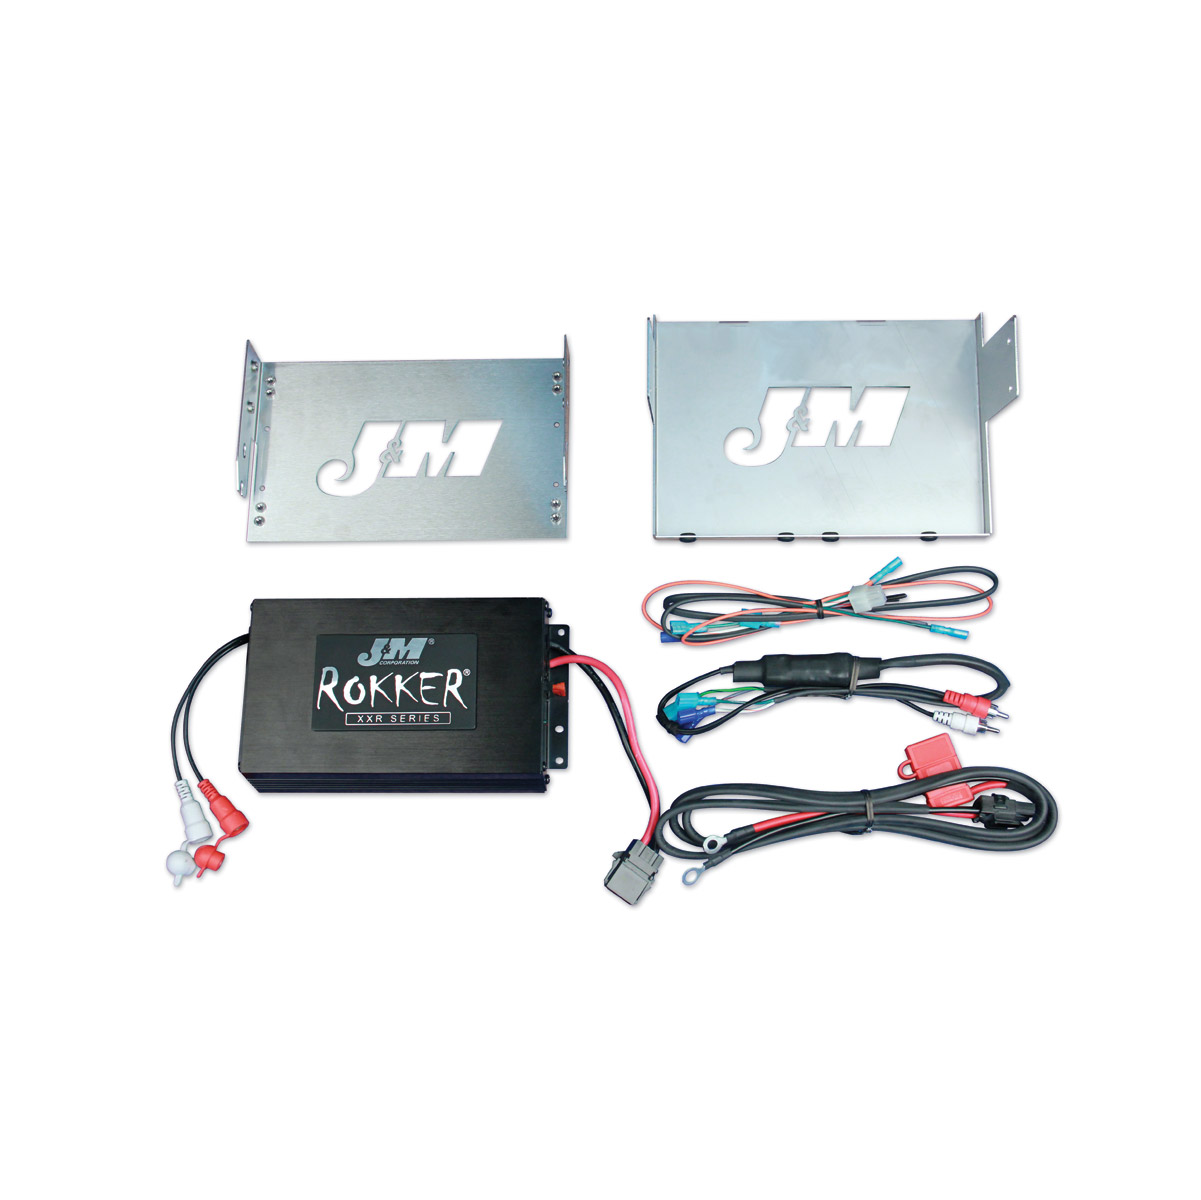 Jm Rokker Xxr 330w 2 Channel Amp Kit